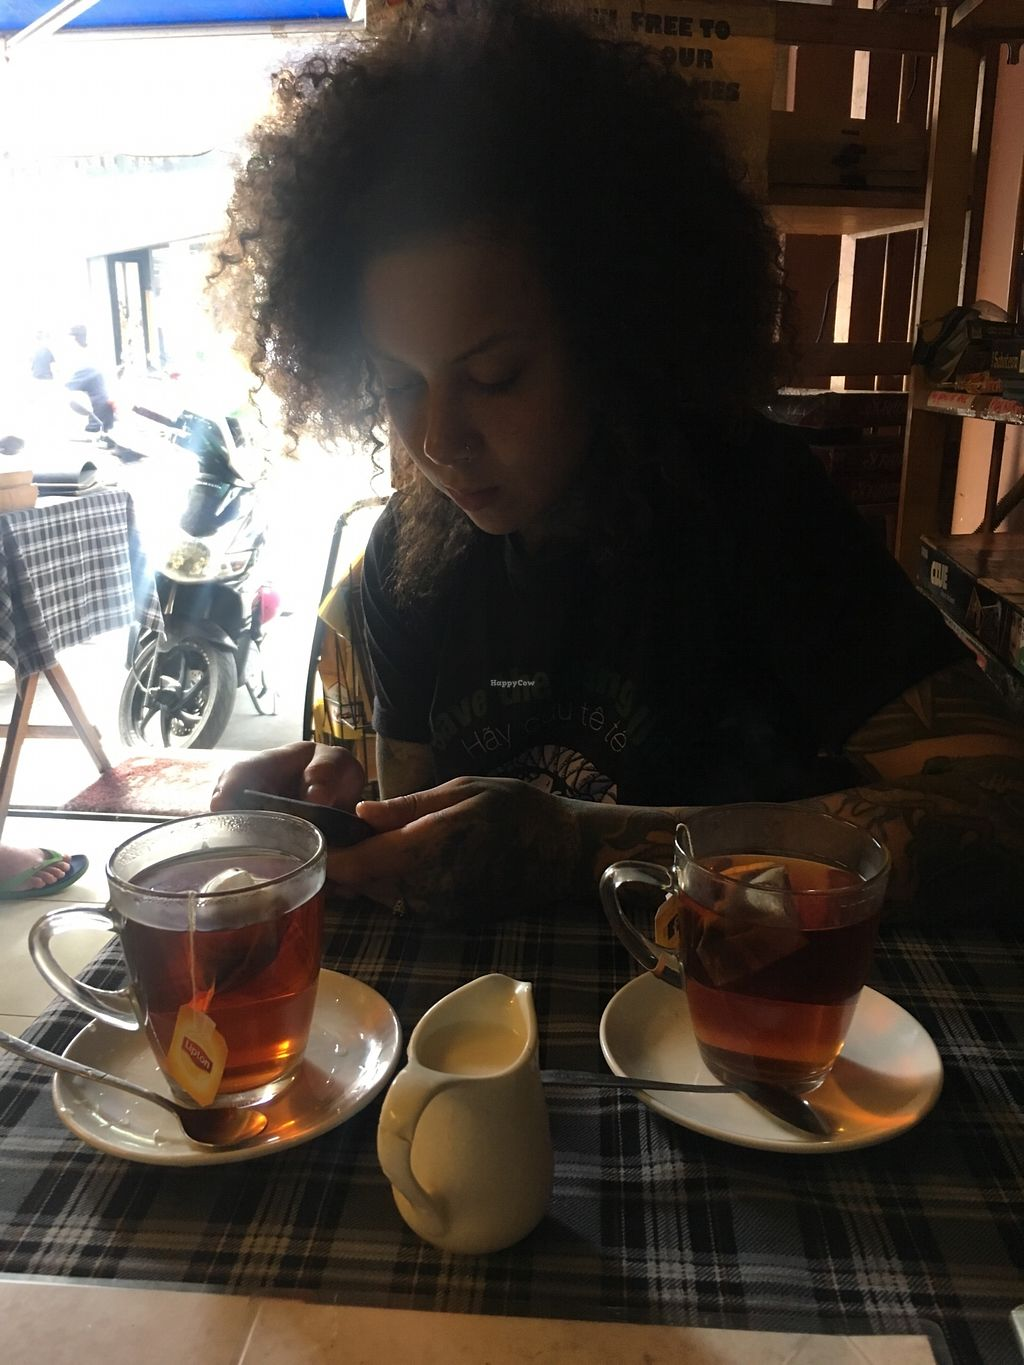 """Photo of Bookworm's Coffee  by <a href=""""/members/profile/MollyKennedy"""">MollyKennedy</a> <br/>Biiiiig mugs of tea ?? <br/> January 21, 2018  - <a href='/contact/abuse/image/52690/349420'>Report</a>"""